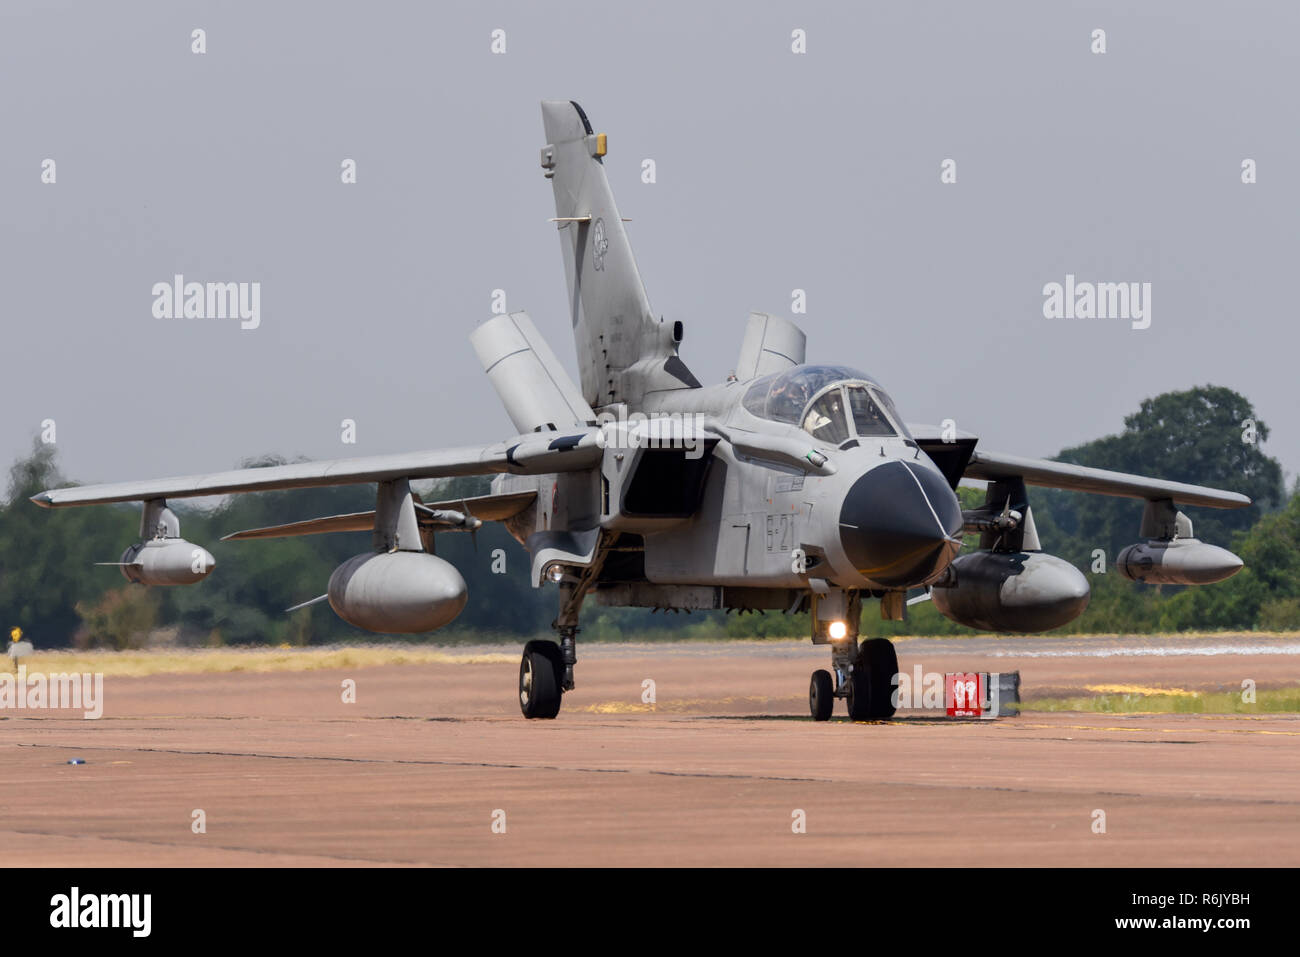 Italian Air Force Panavia Tornado IDS at Royal International Air Tattoo, RIAT, RAF Fairford airshow.  MM7031, 6-21 of Aeronautica Militare. Air Brakes - Stock Image